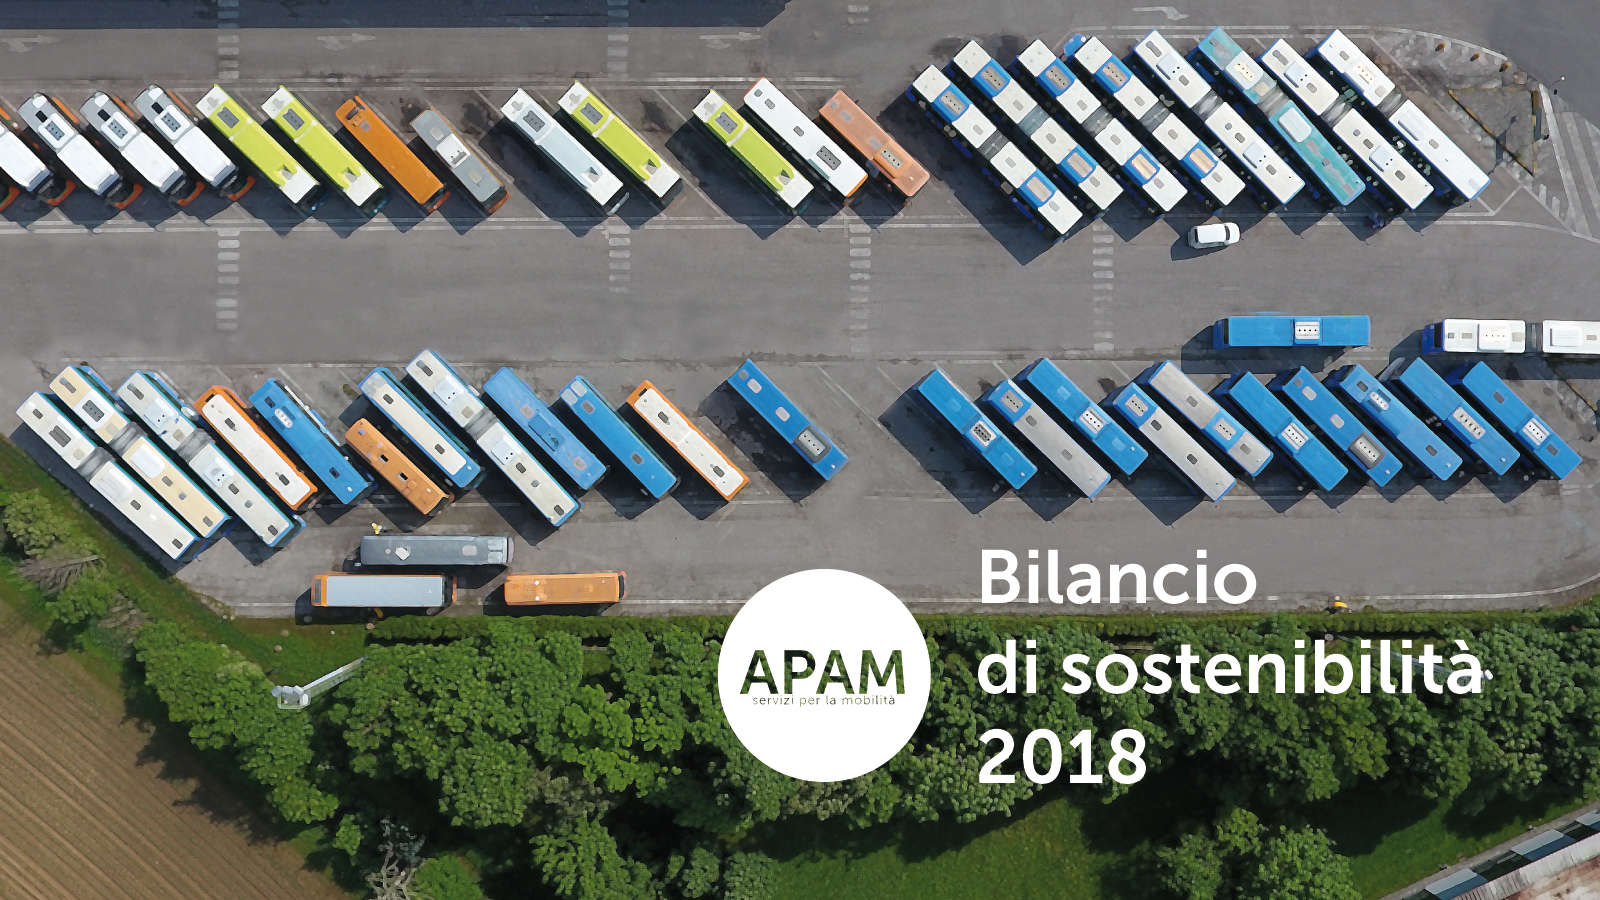 APAM'S SECOND SUSTAINABILITY REPORT PRESENTED